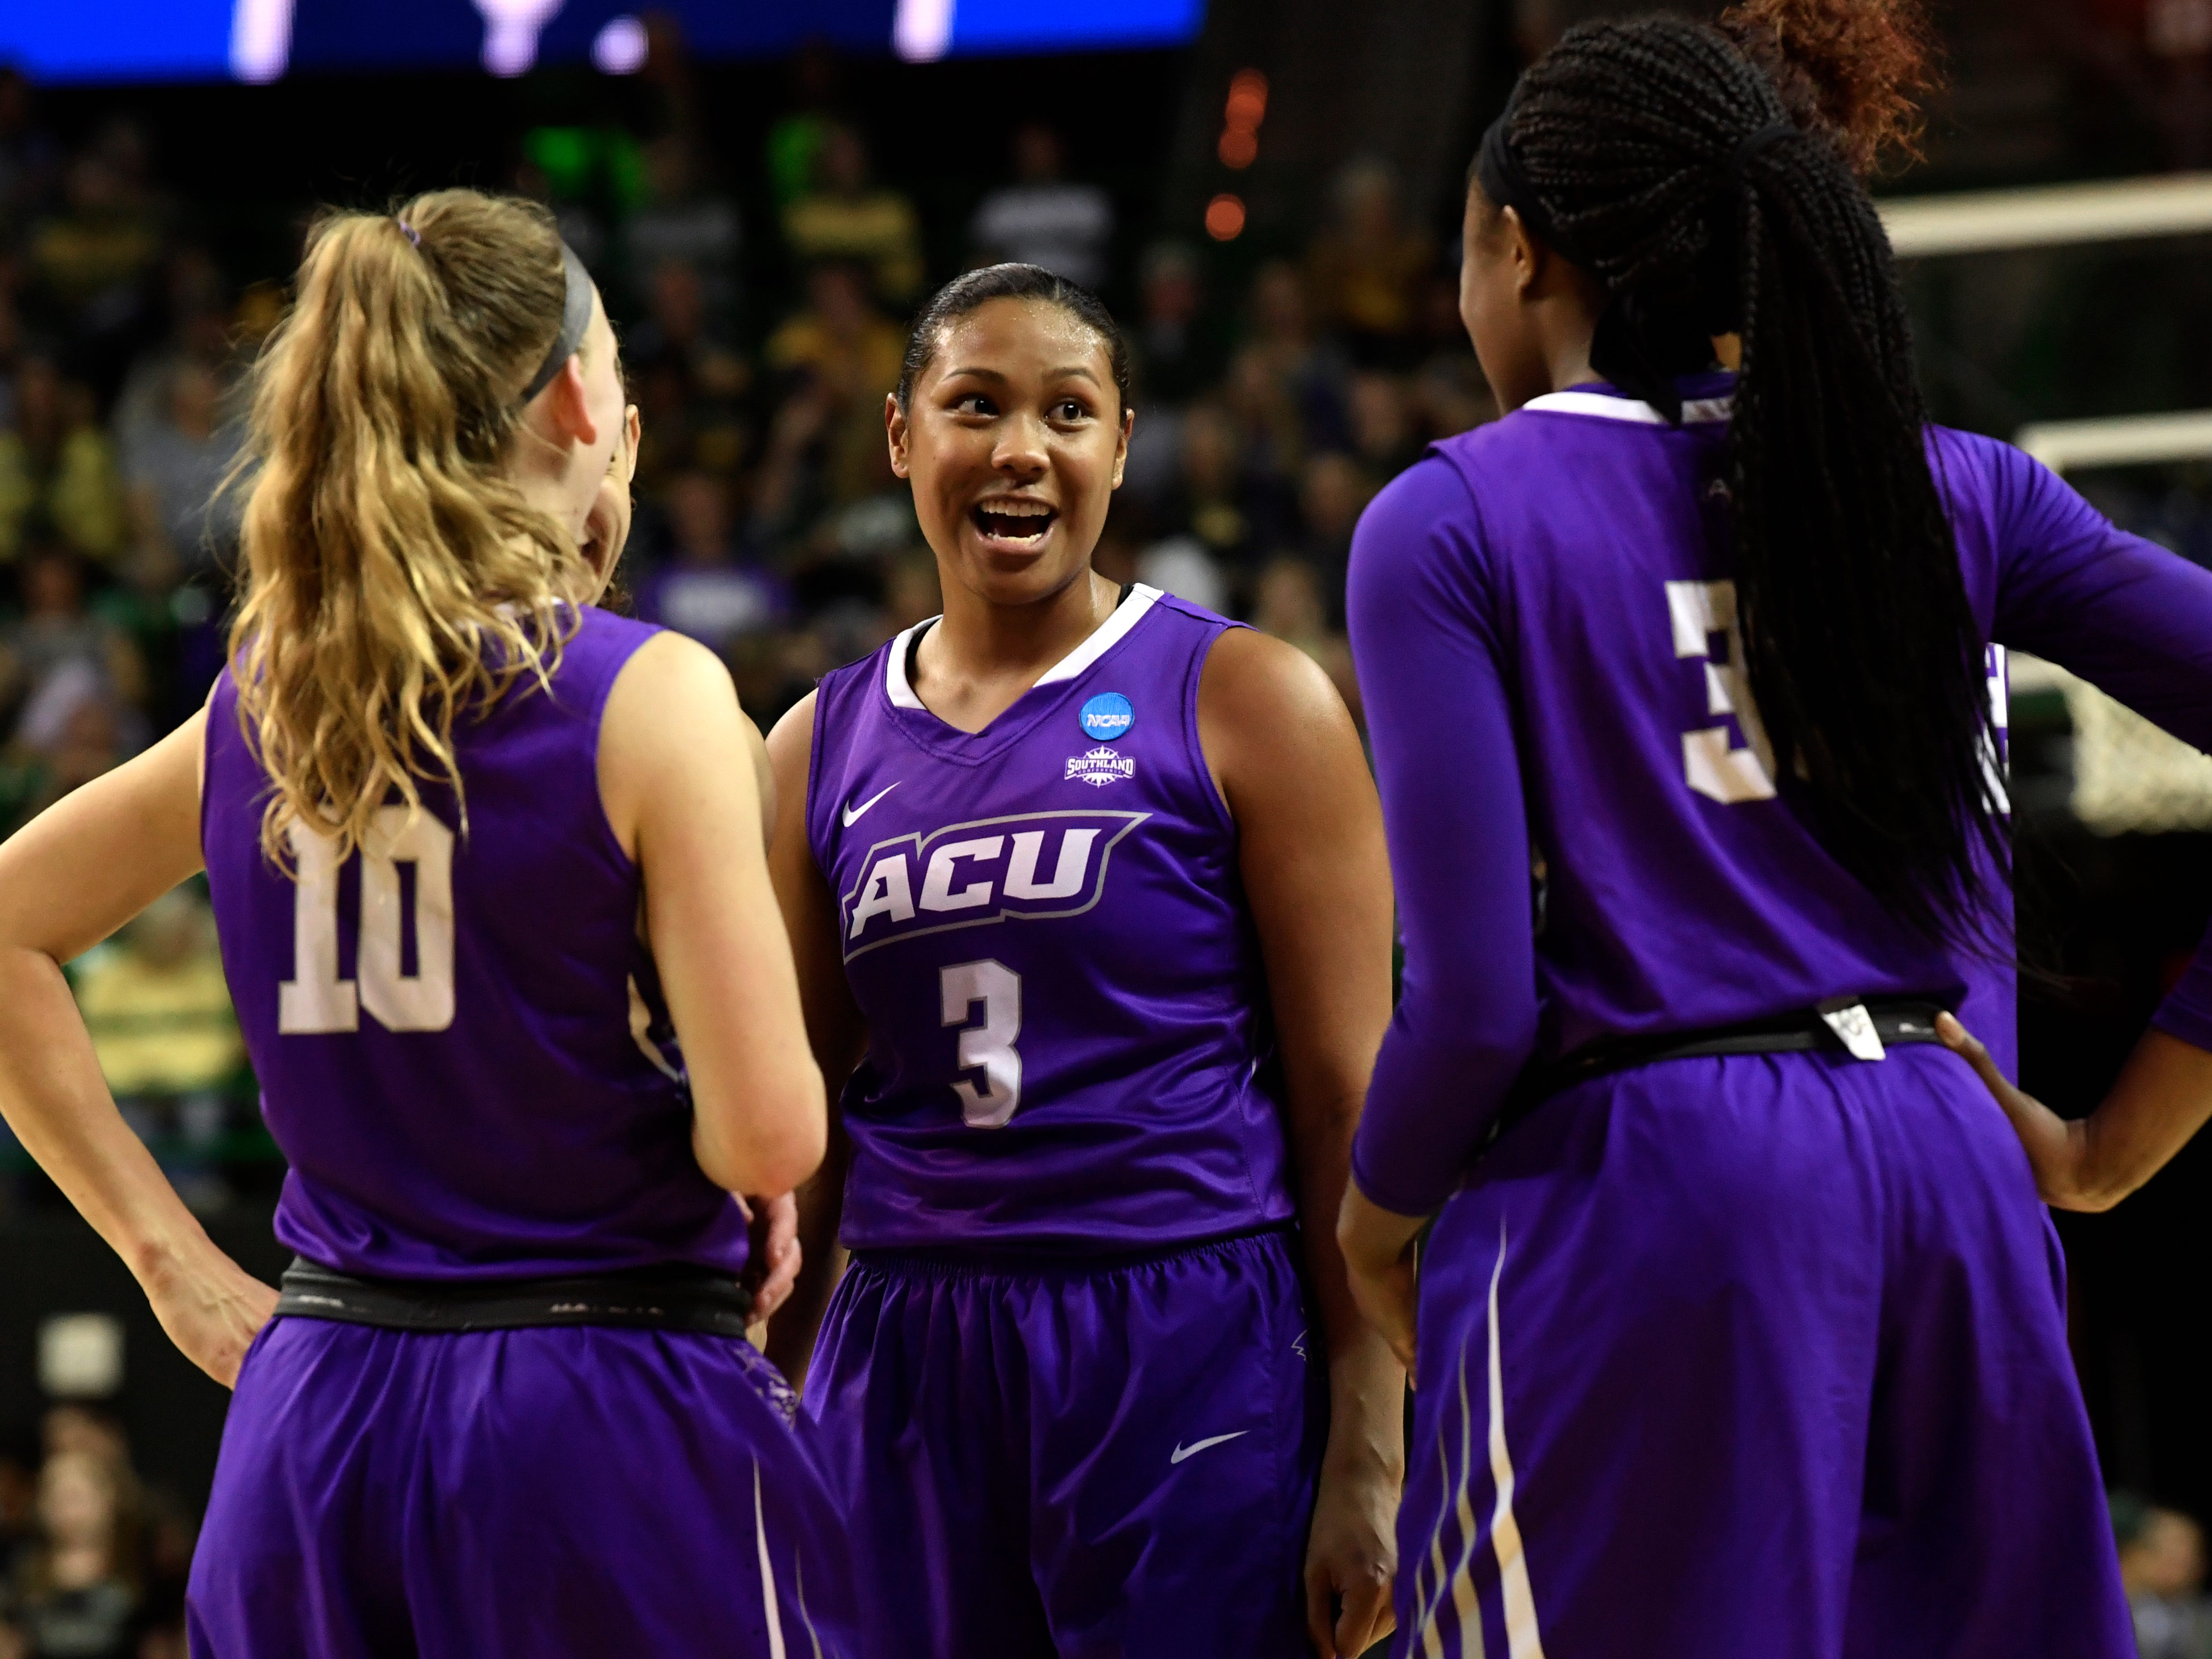 ACU forward Domique Golightly chats with teammates Breanna Wright (left) and Alyssa Adams during a timeout at Saturday's NCAA Tournament women's round 1 basketball game March 23, 2019. Baylor defeated Abilene Christian University, 95-38.